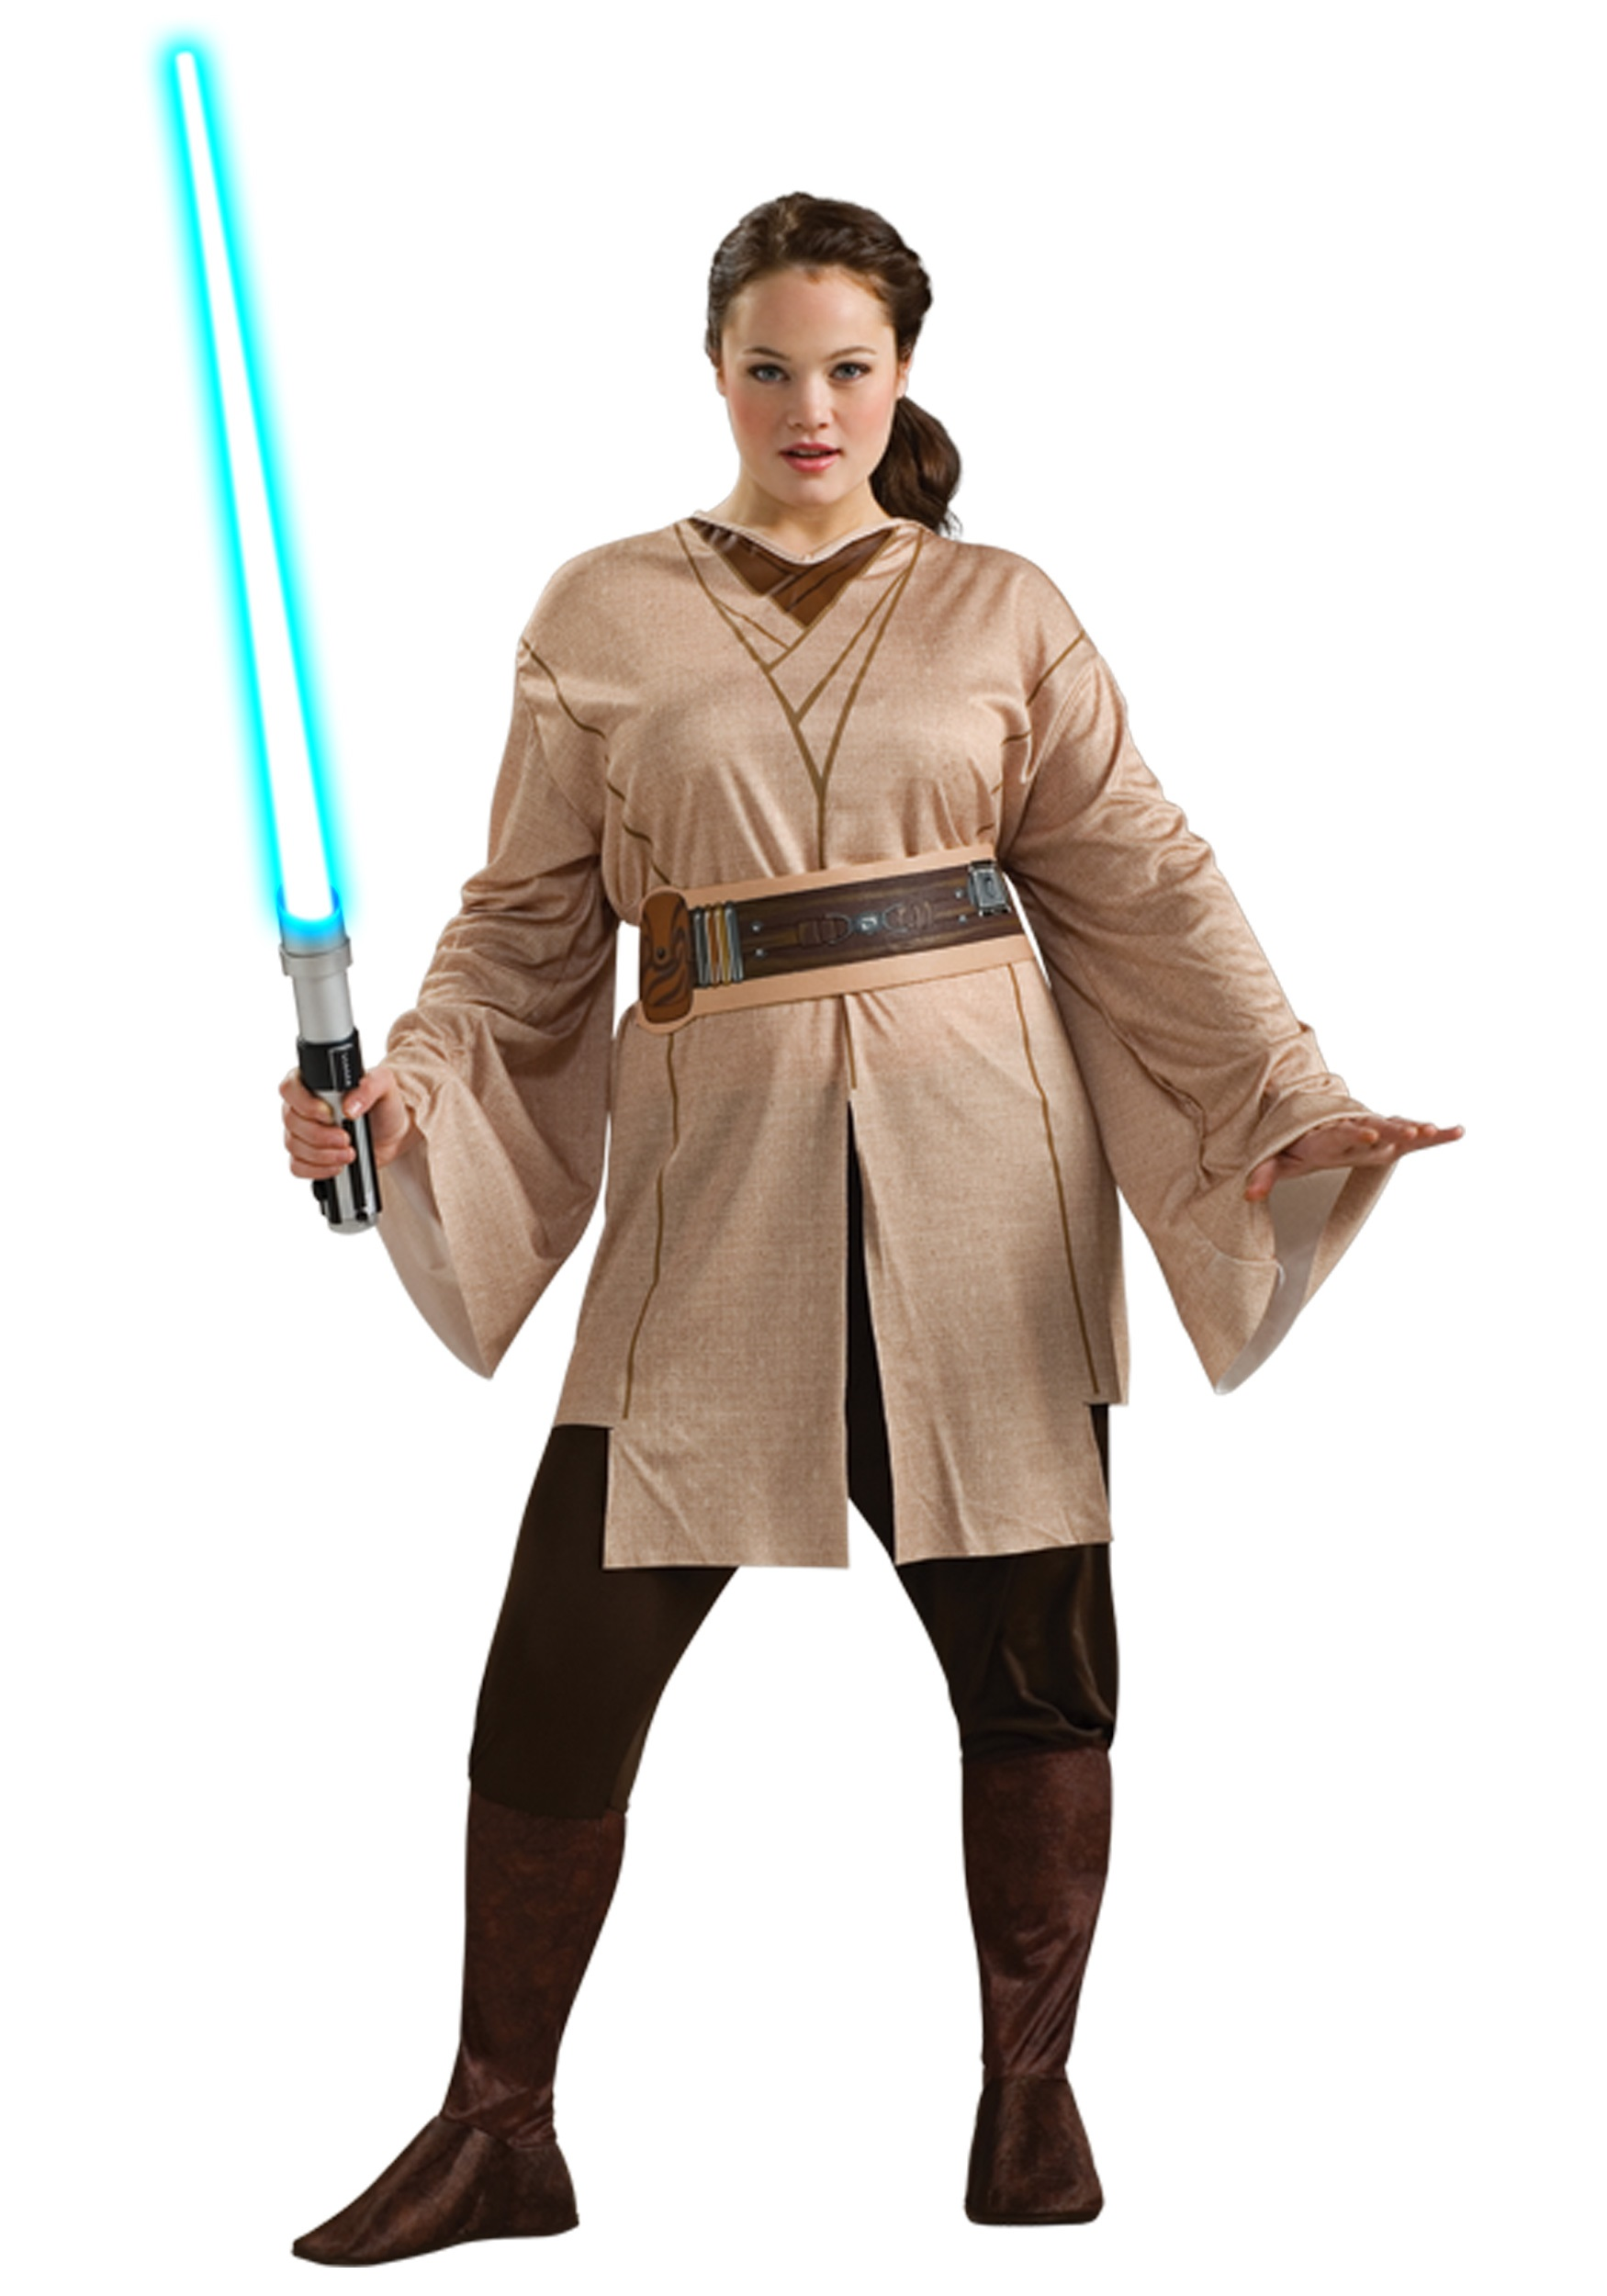 results 121 - 180 of 568 for star wars costumes